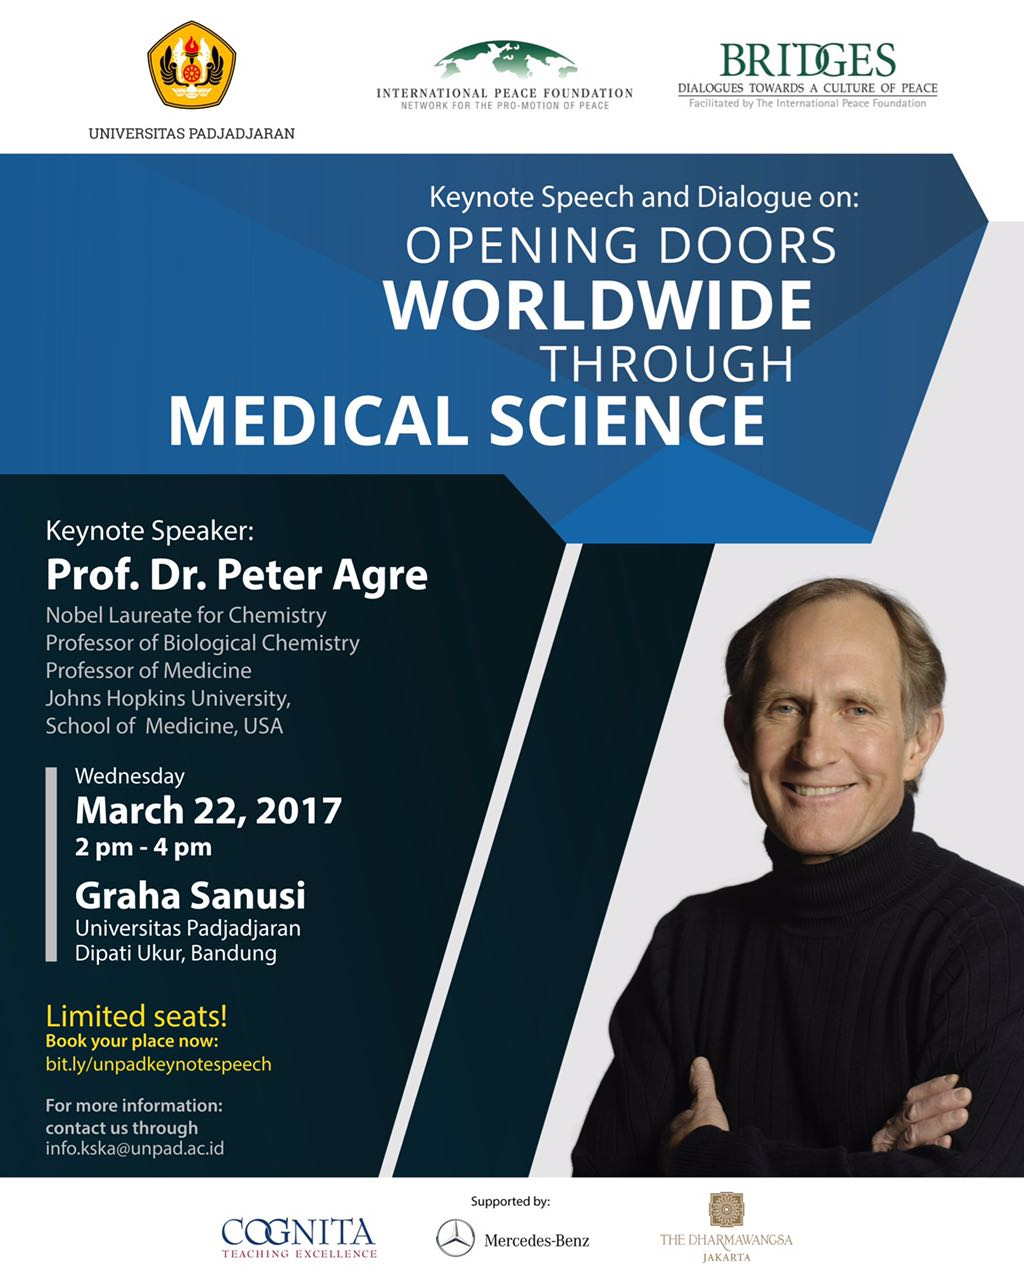 poster-prof-peter-agre-rev